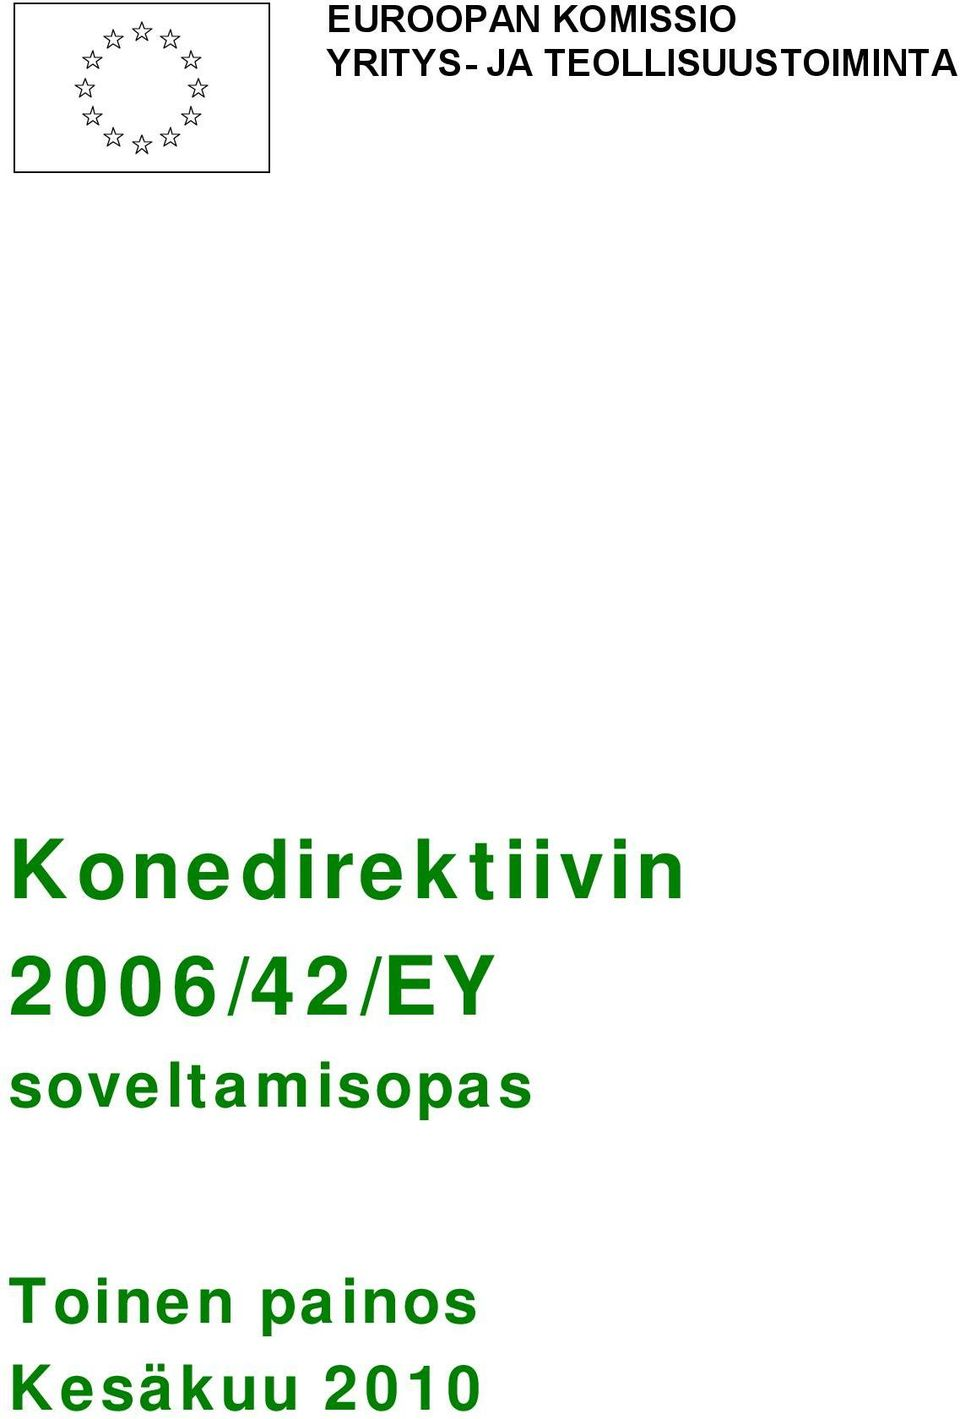 Konedirektiivin 2006/42/EY